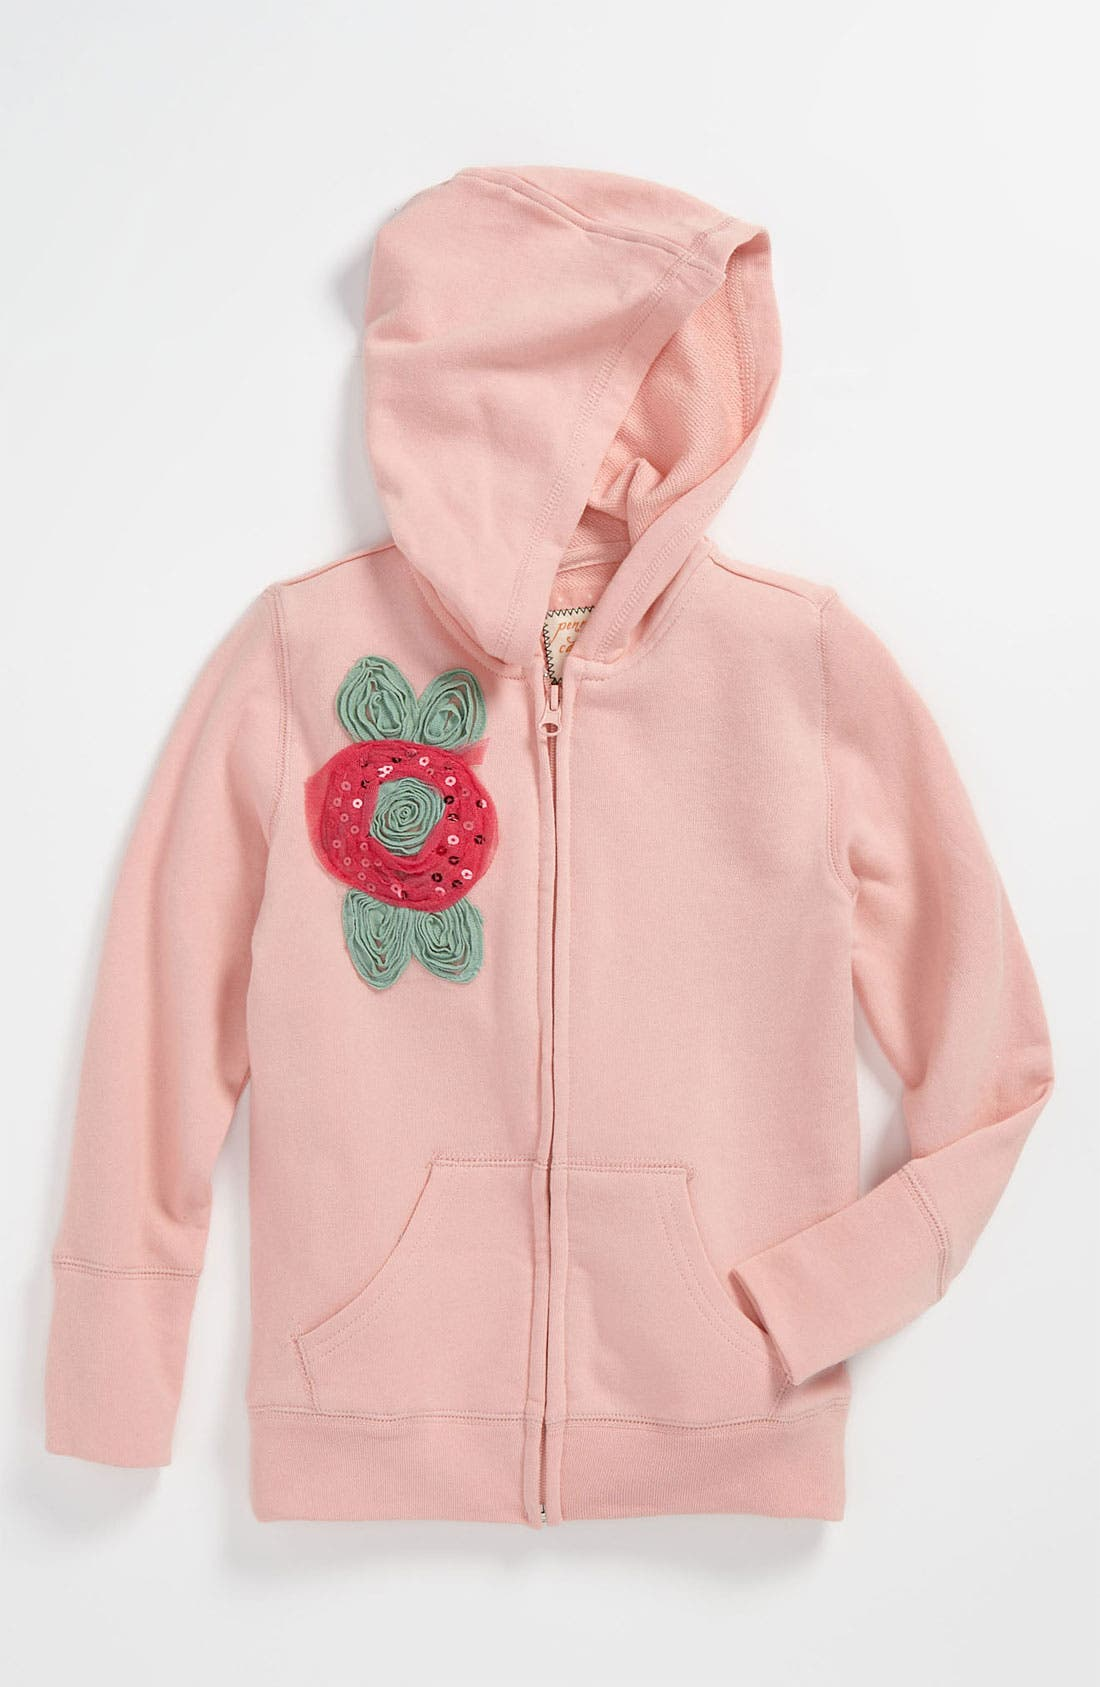 Main Image - Penny Candy 'Happy' Hoodie (Little Girls & Big Girls)